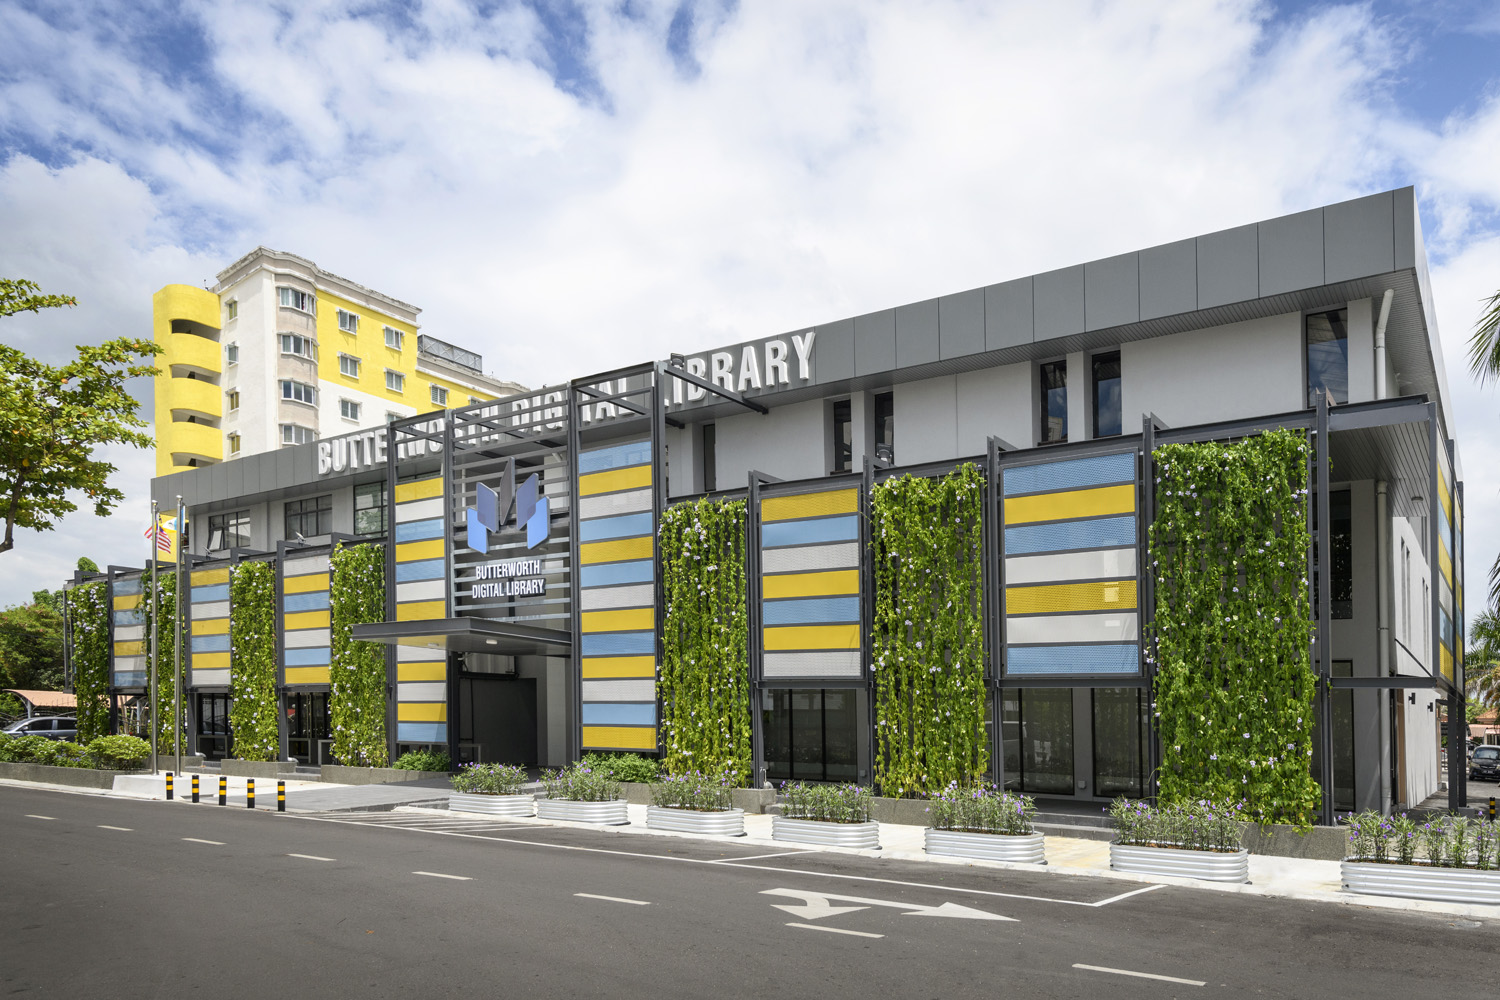 The Butterworth Digital Library, an adaptive reuse project, is equipped with state-of-the-art digital technology to serve communities within a five-kilometre